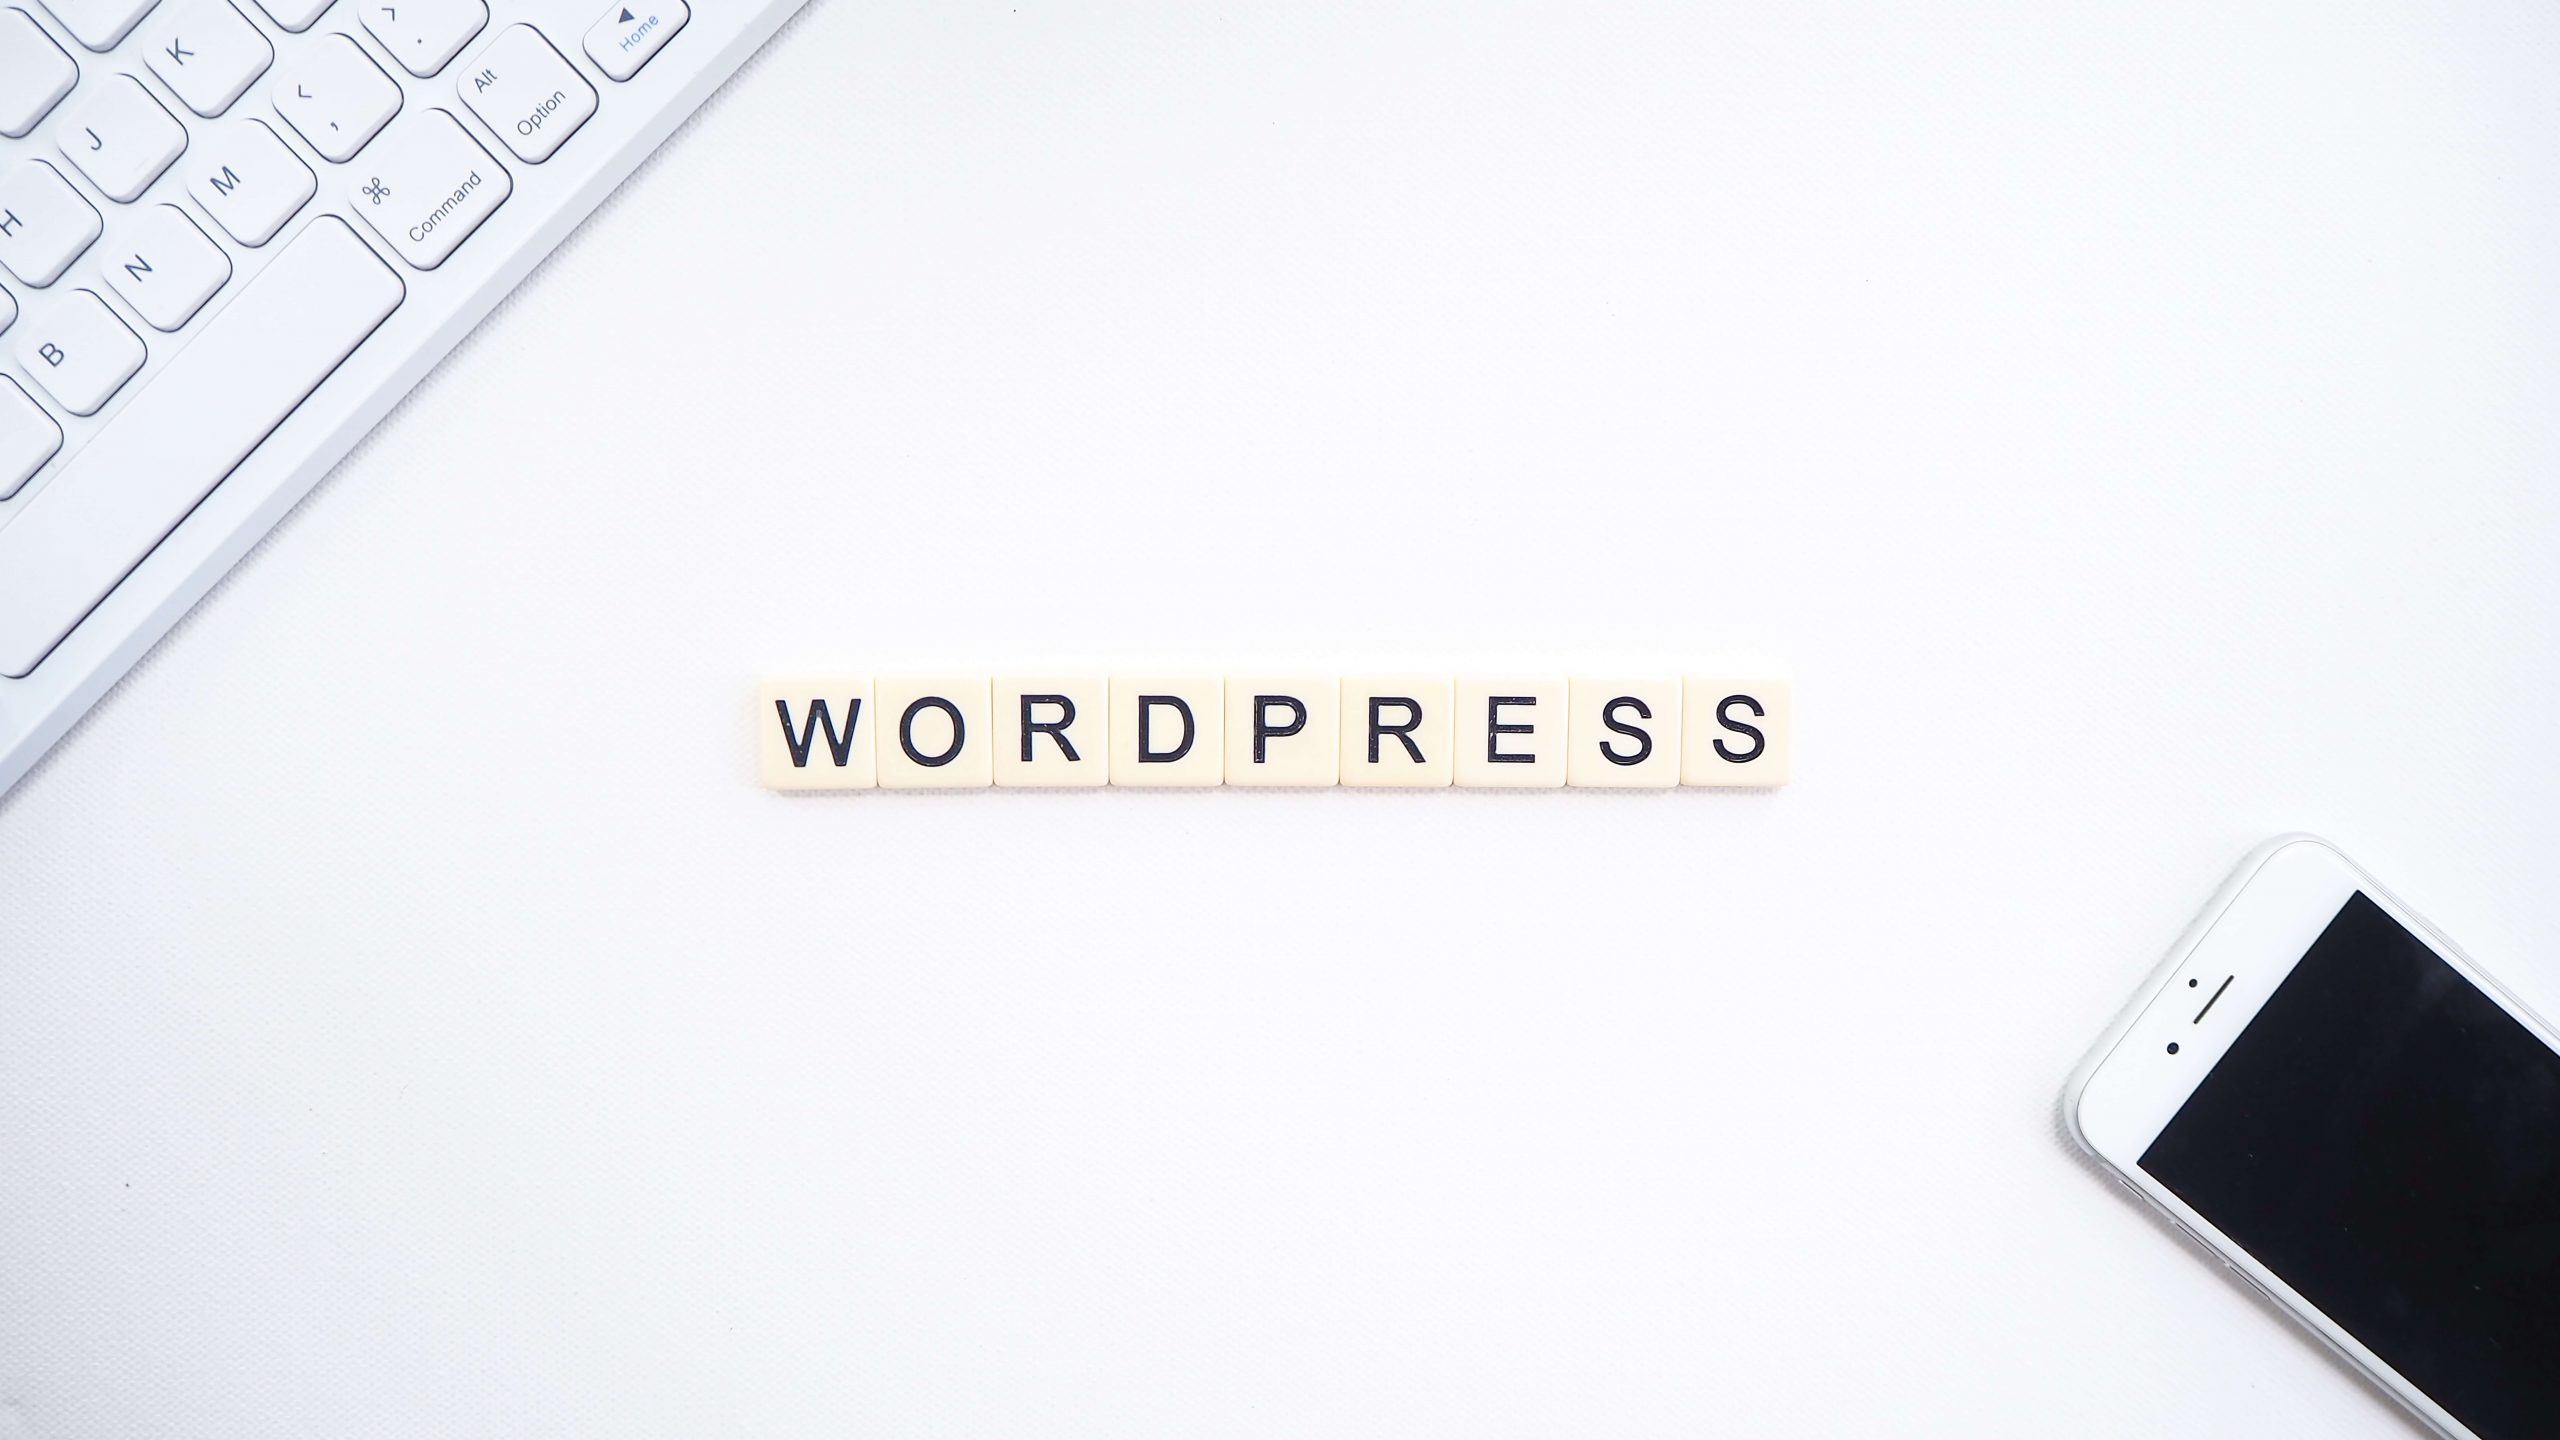 How to Completely Remove Defacement from Wordpress Site?